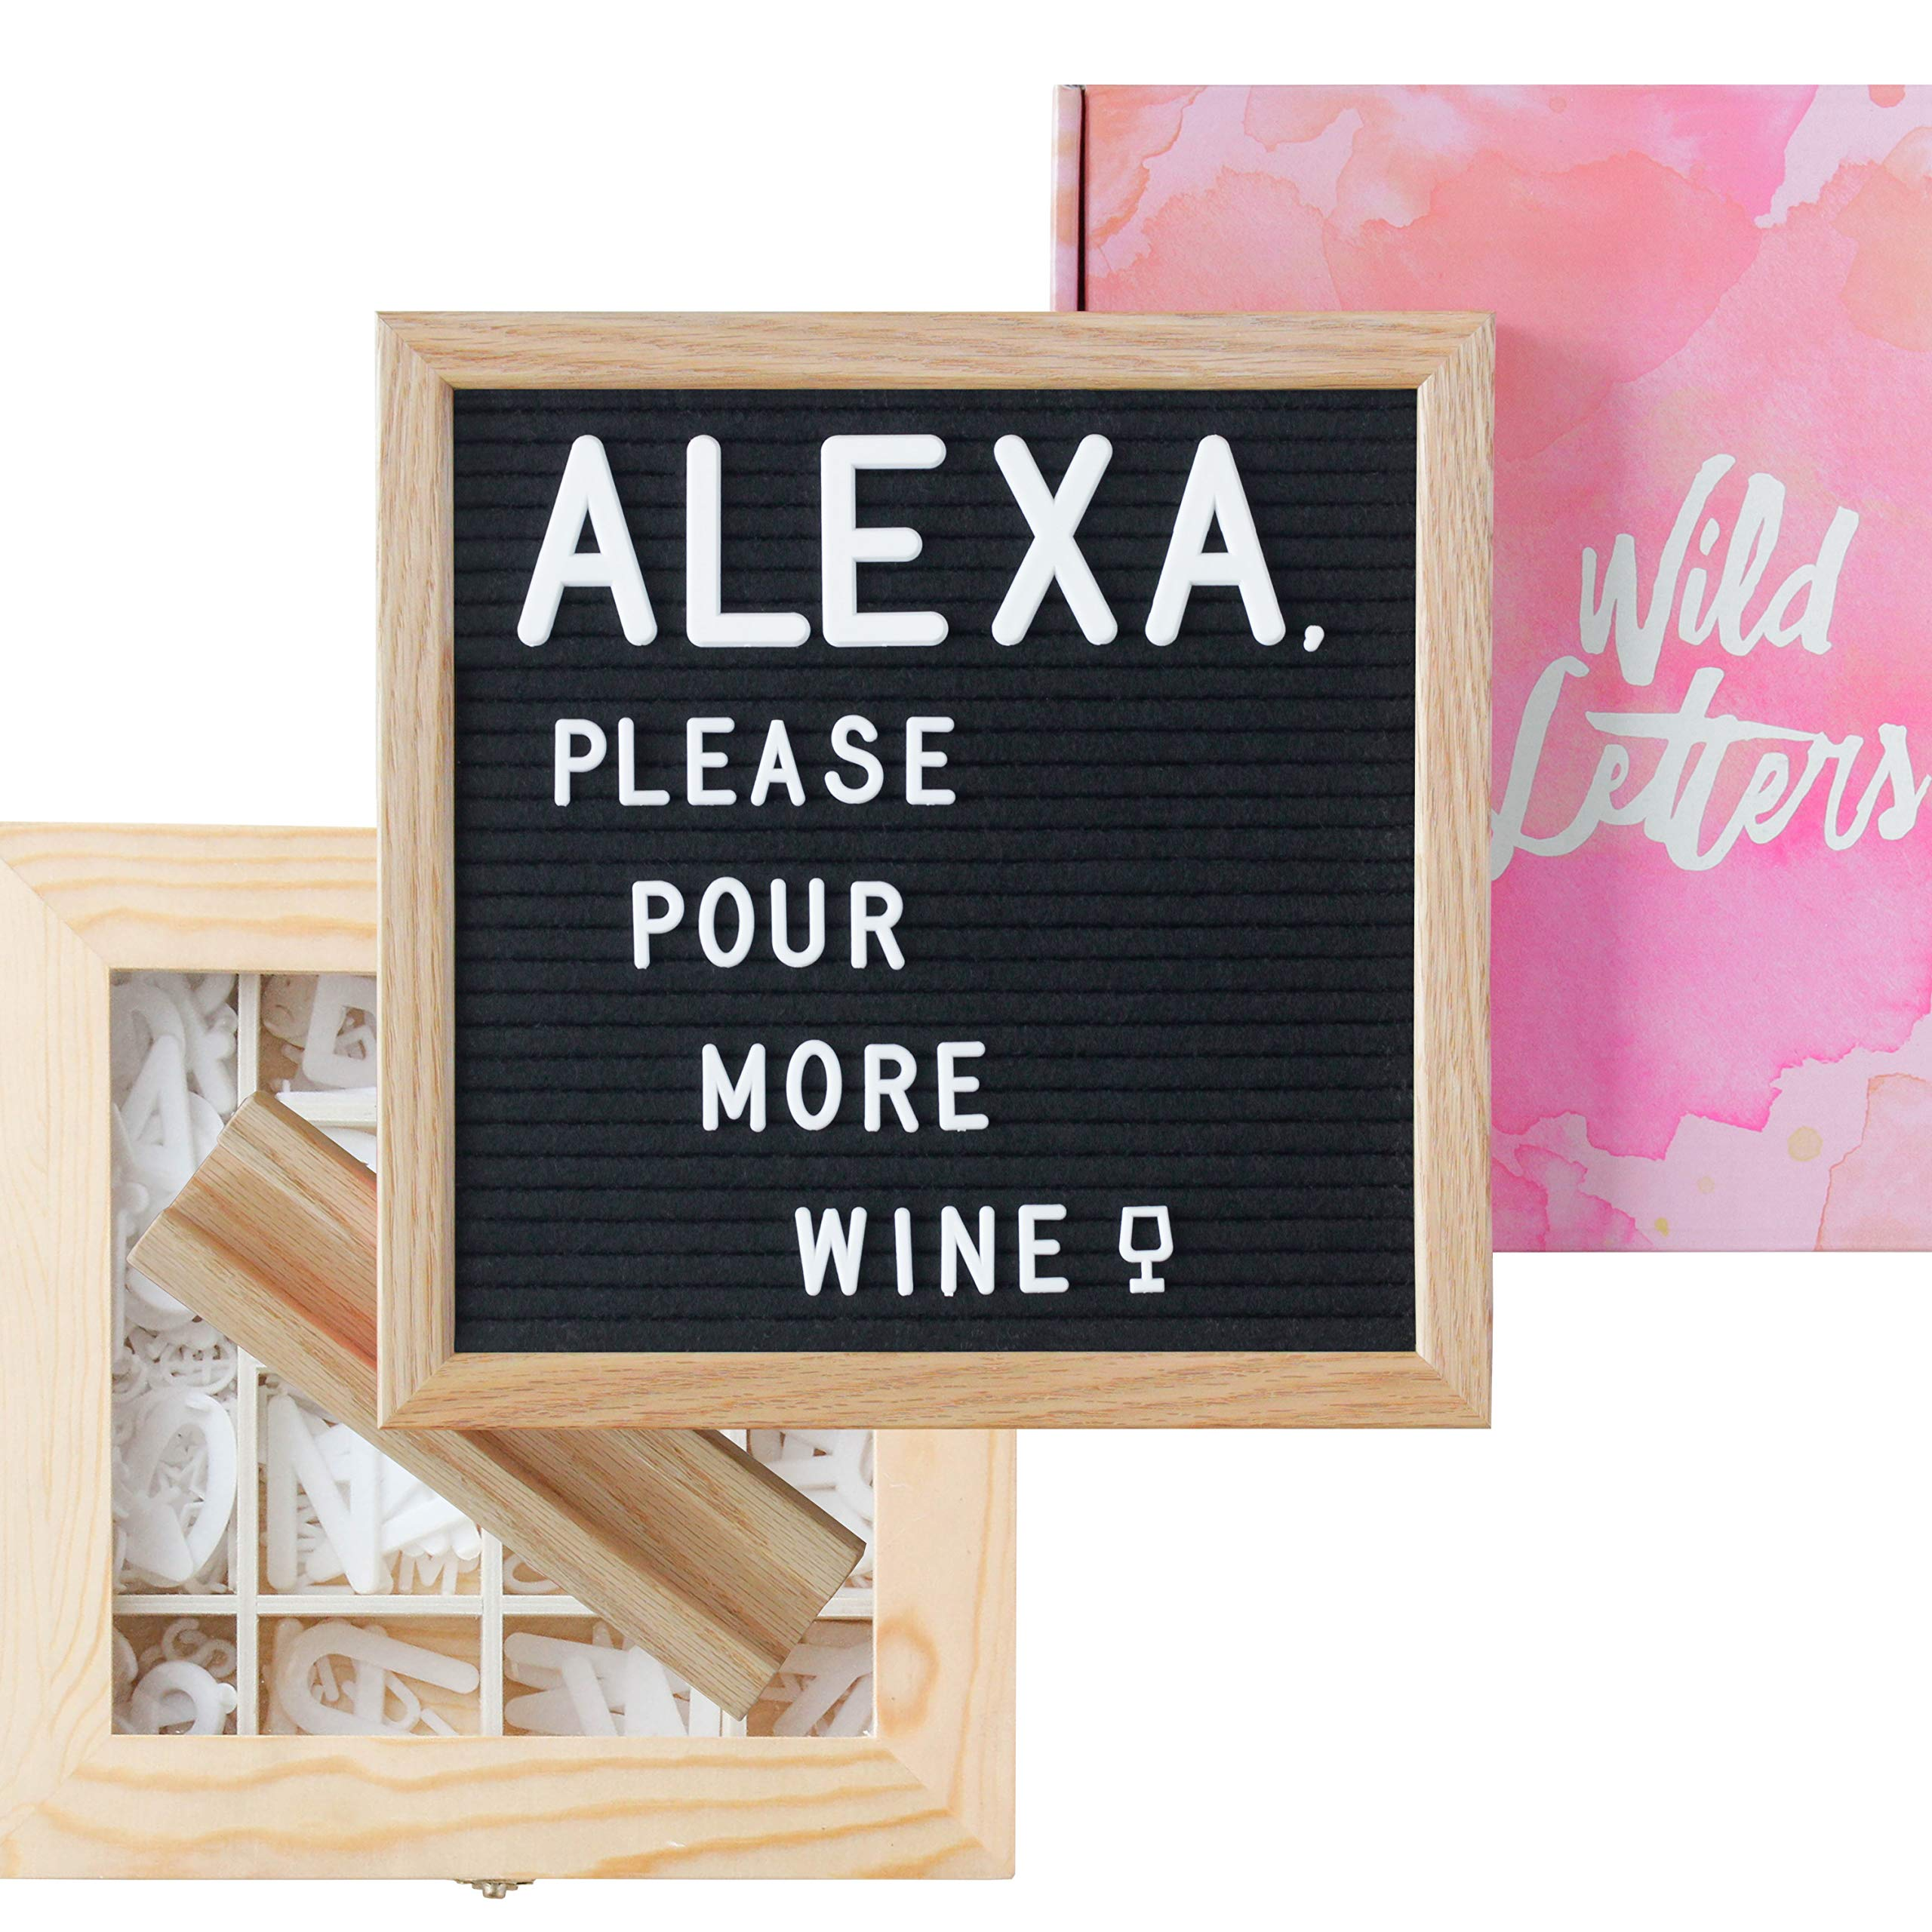 Letter Board with Letters 10x10 Felt Letterboard Accessories |+Organizer +Pre-Cut +Large Letters +Stand| Black, Letterboards, Changeable, Message Board, Box, Baby Announcement, First Day of School by Wild Letters